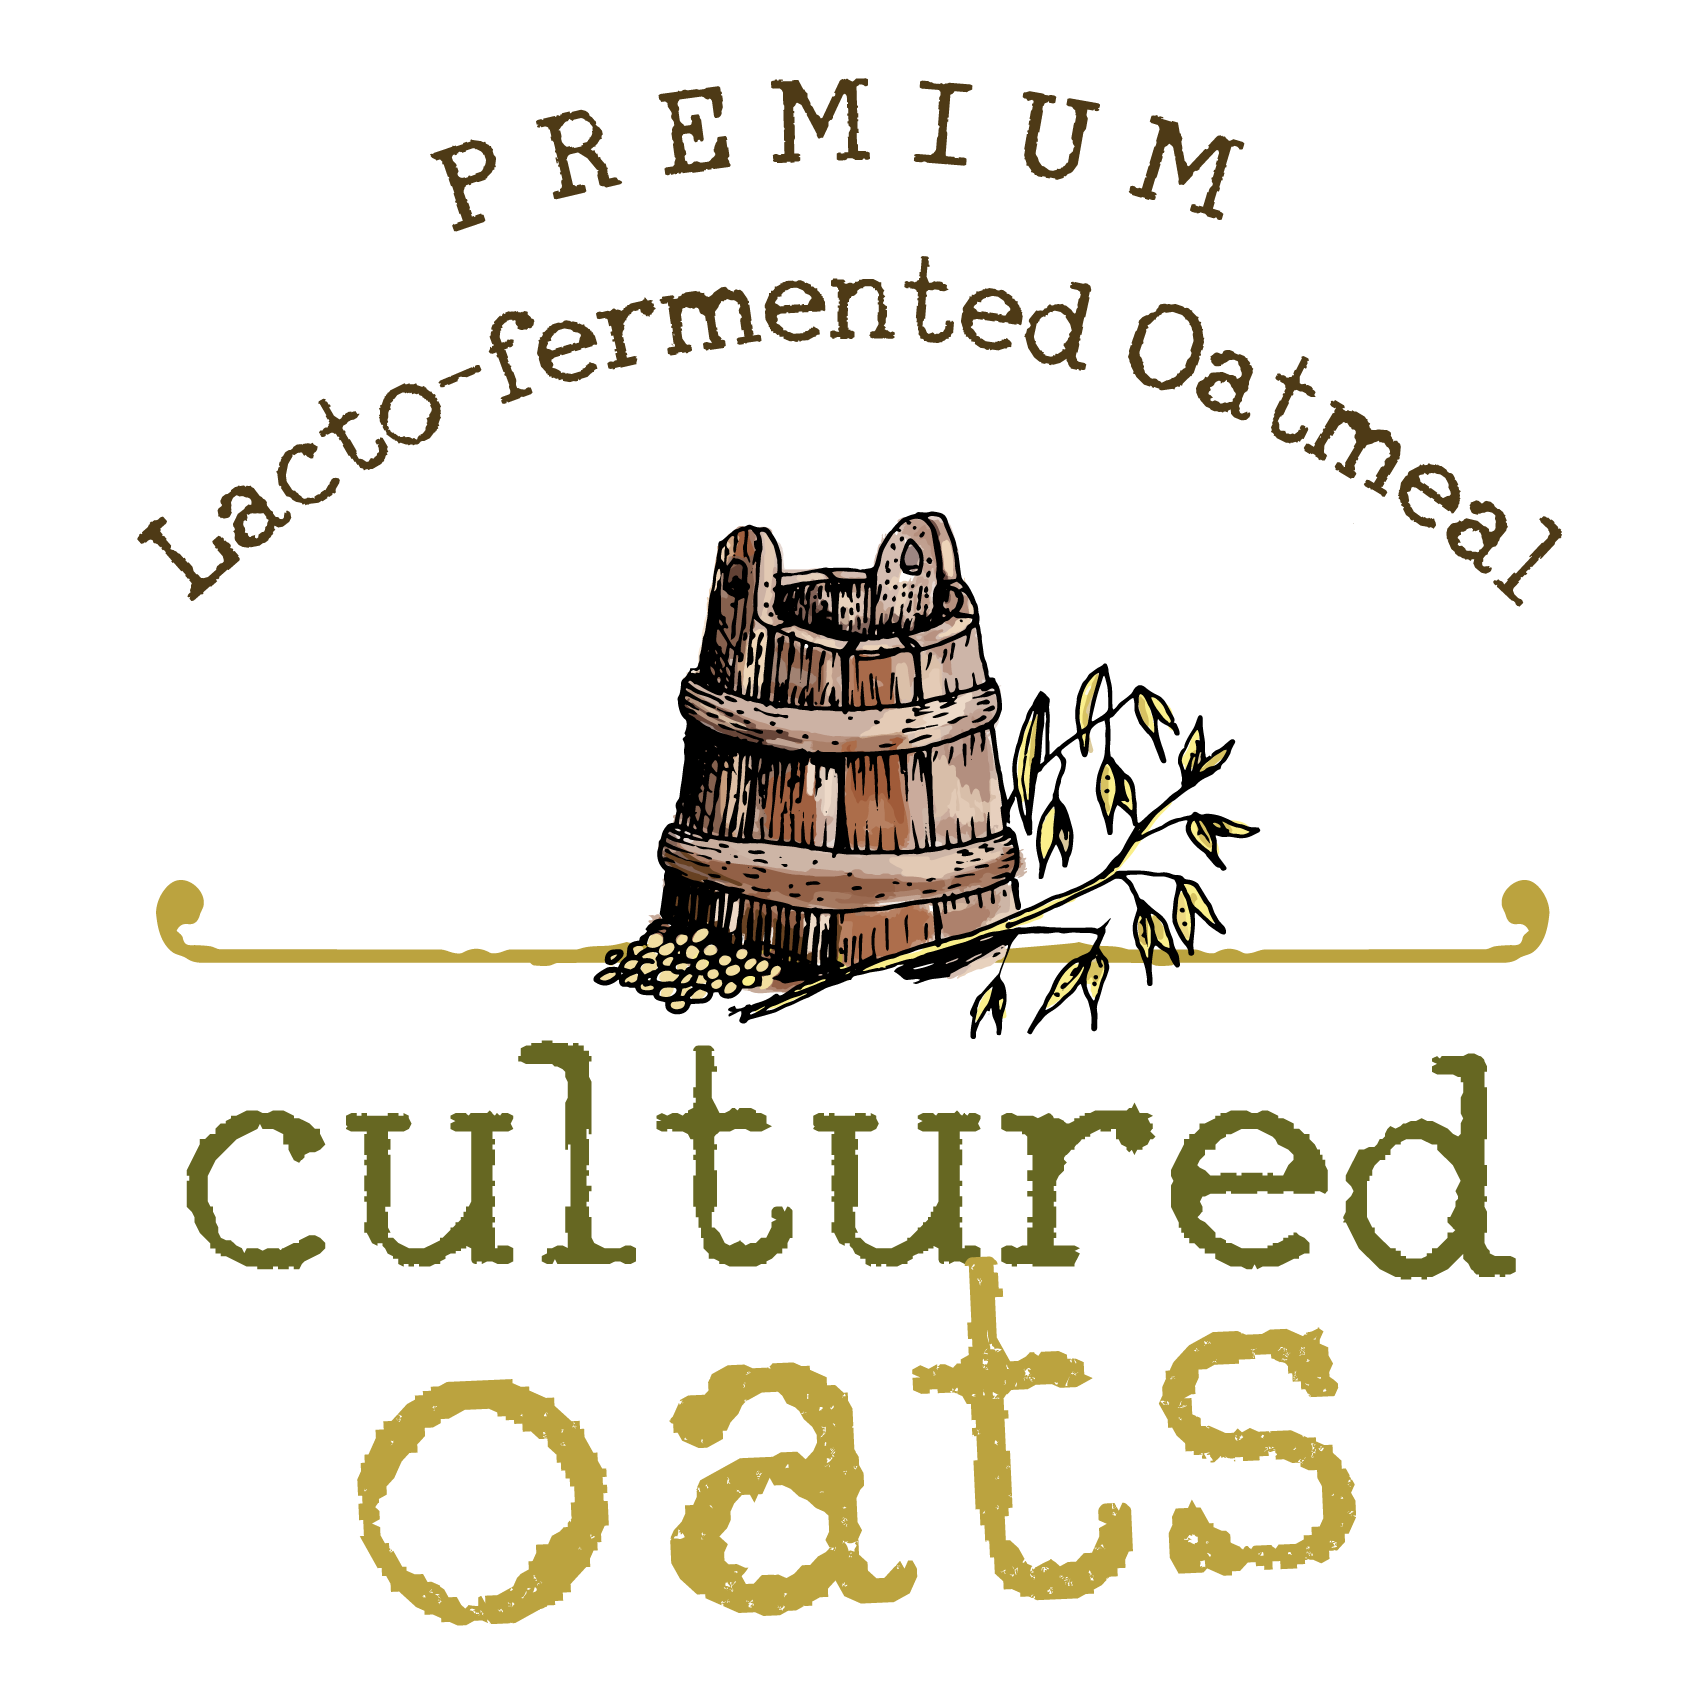 Design a logo for a new line of premium probiotic oatmeal